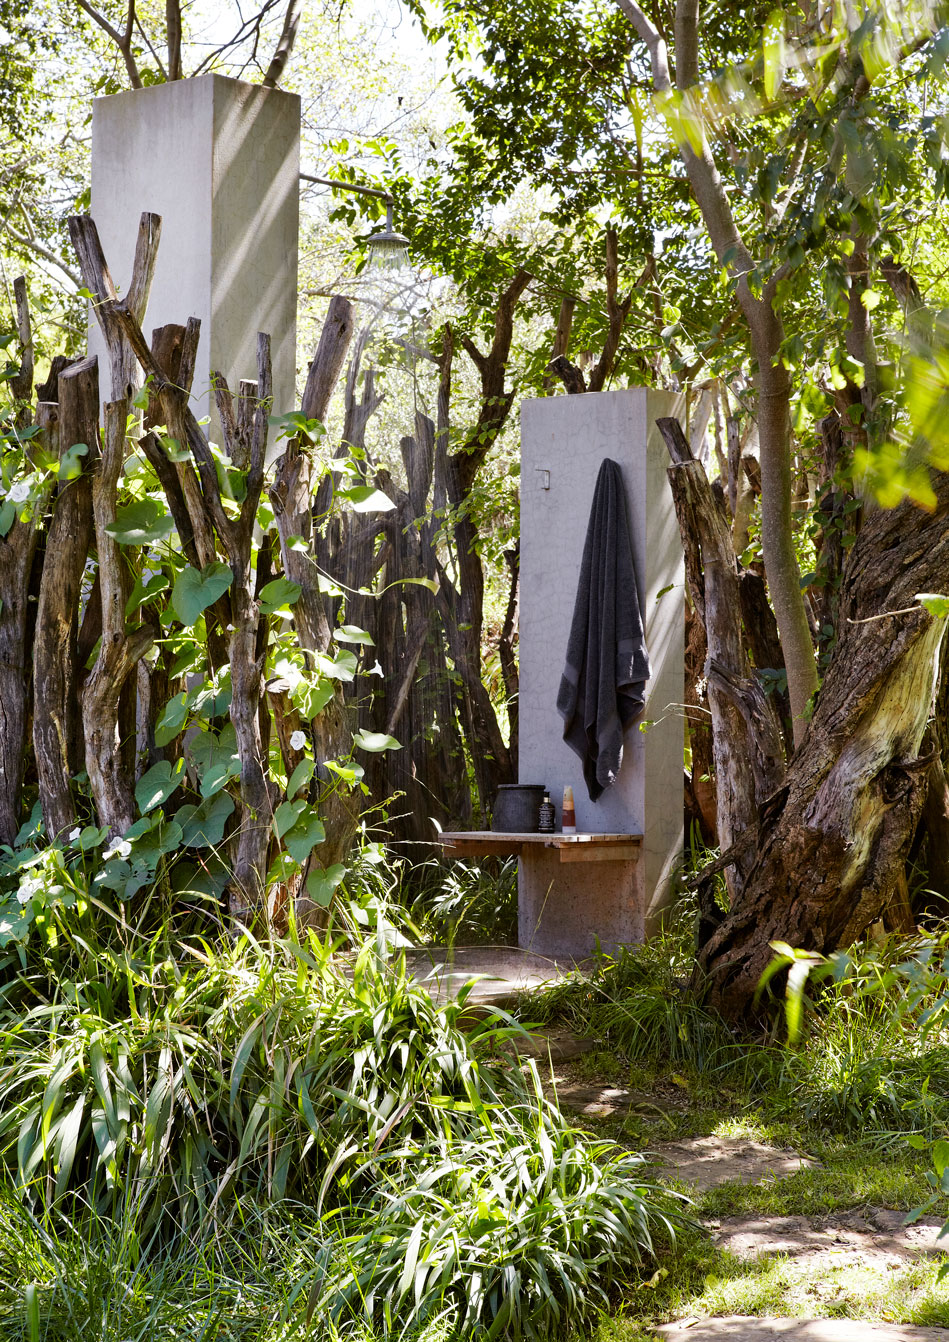 The outdoor shower – a little more extreme than the bath – is nevertheless a luxury that creates an opportunity to engage with the surroundings befitting a sense of challenge and luxury that fits hand in hand.